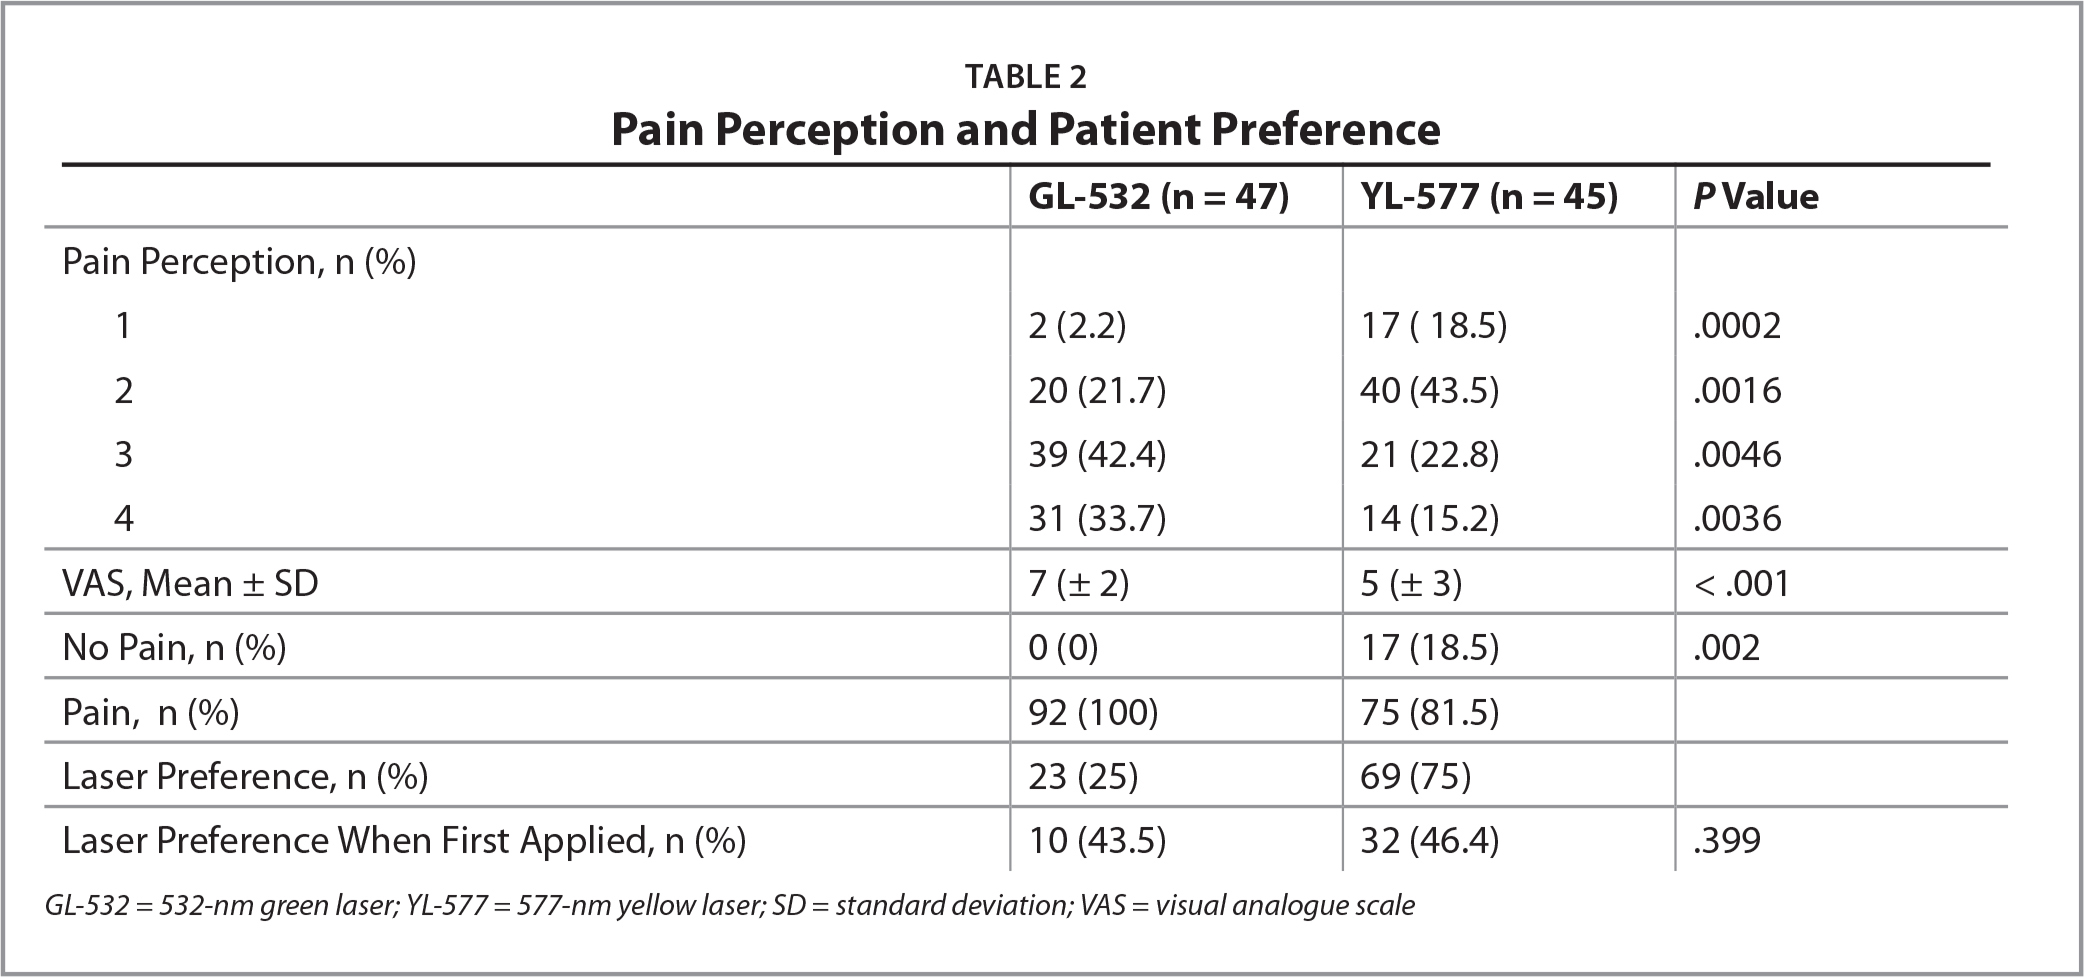 Pain Perception and Patient Preference